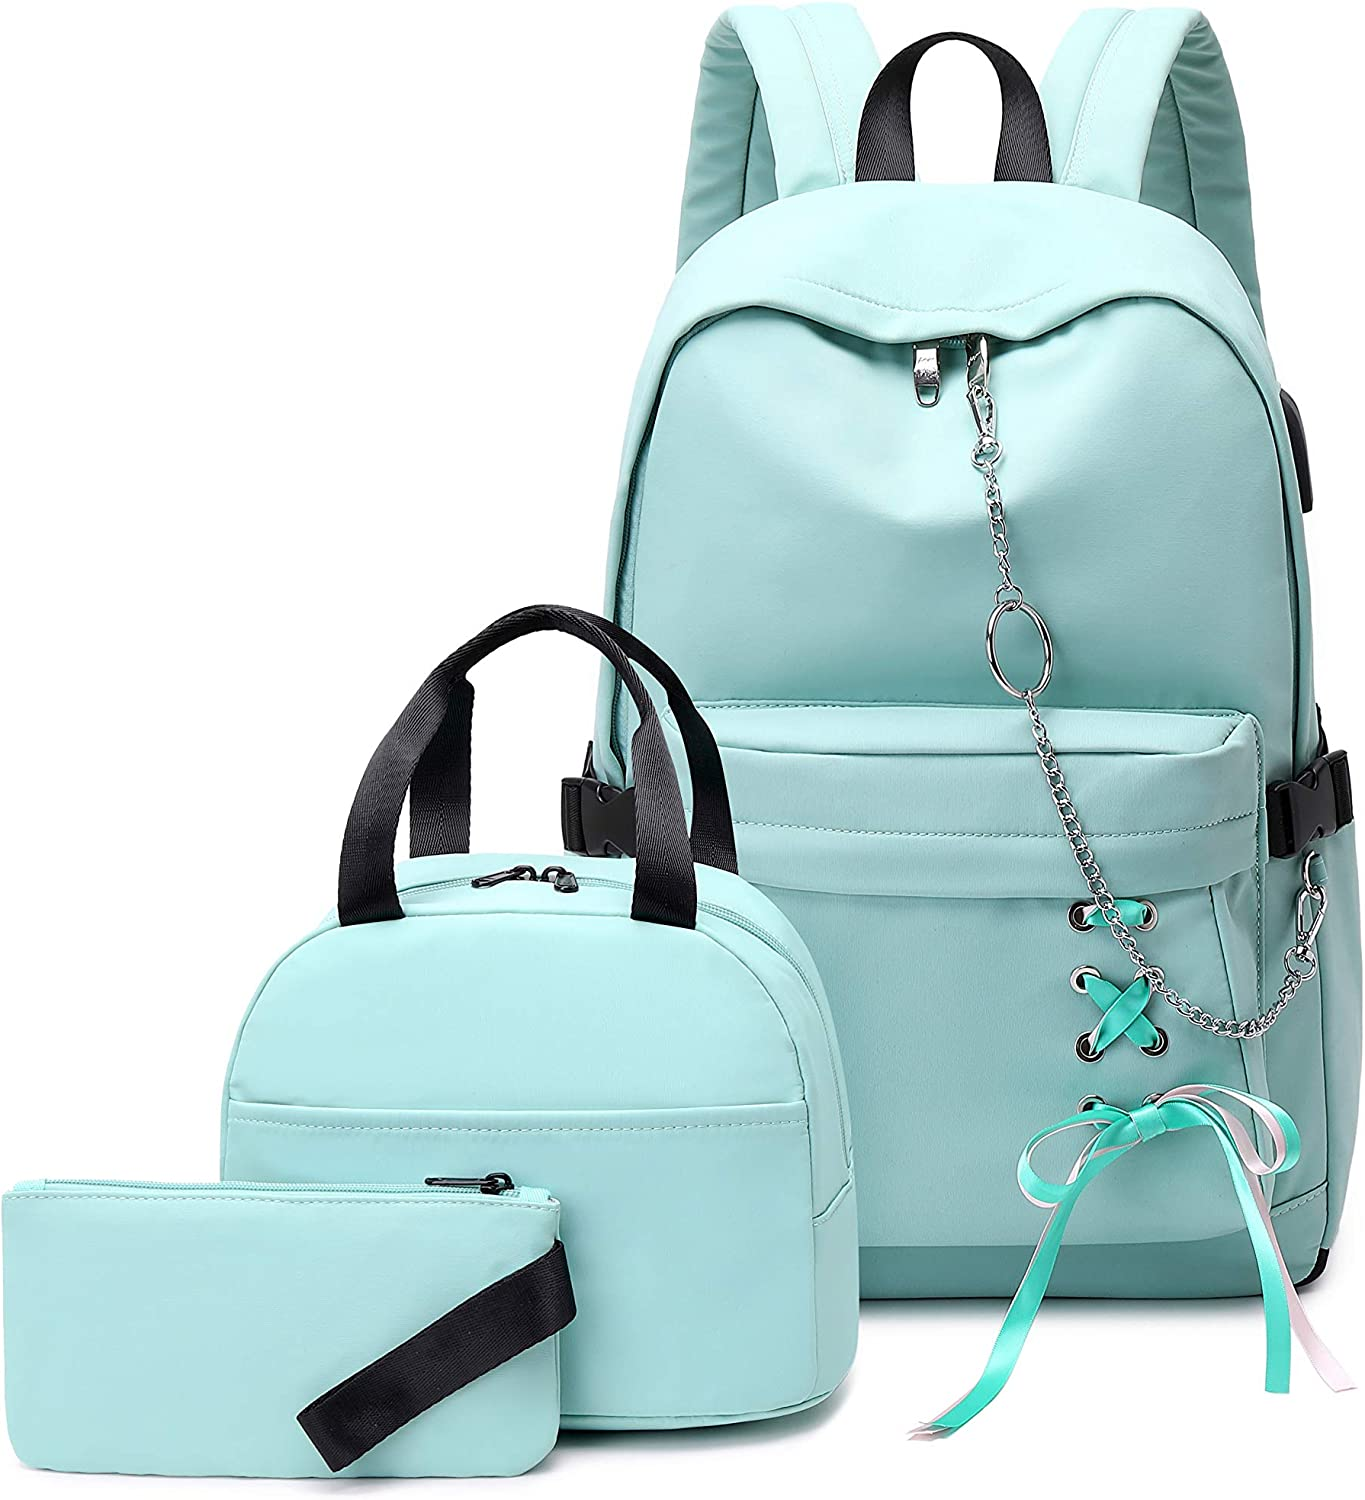 Joymoze Girl Laptop Backpack Set with Lunch Bag and Pencil Purse Light Blue Chain